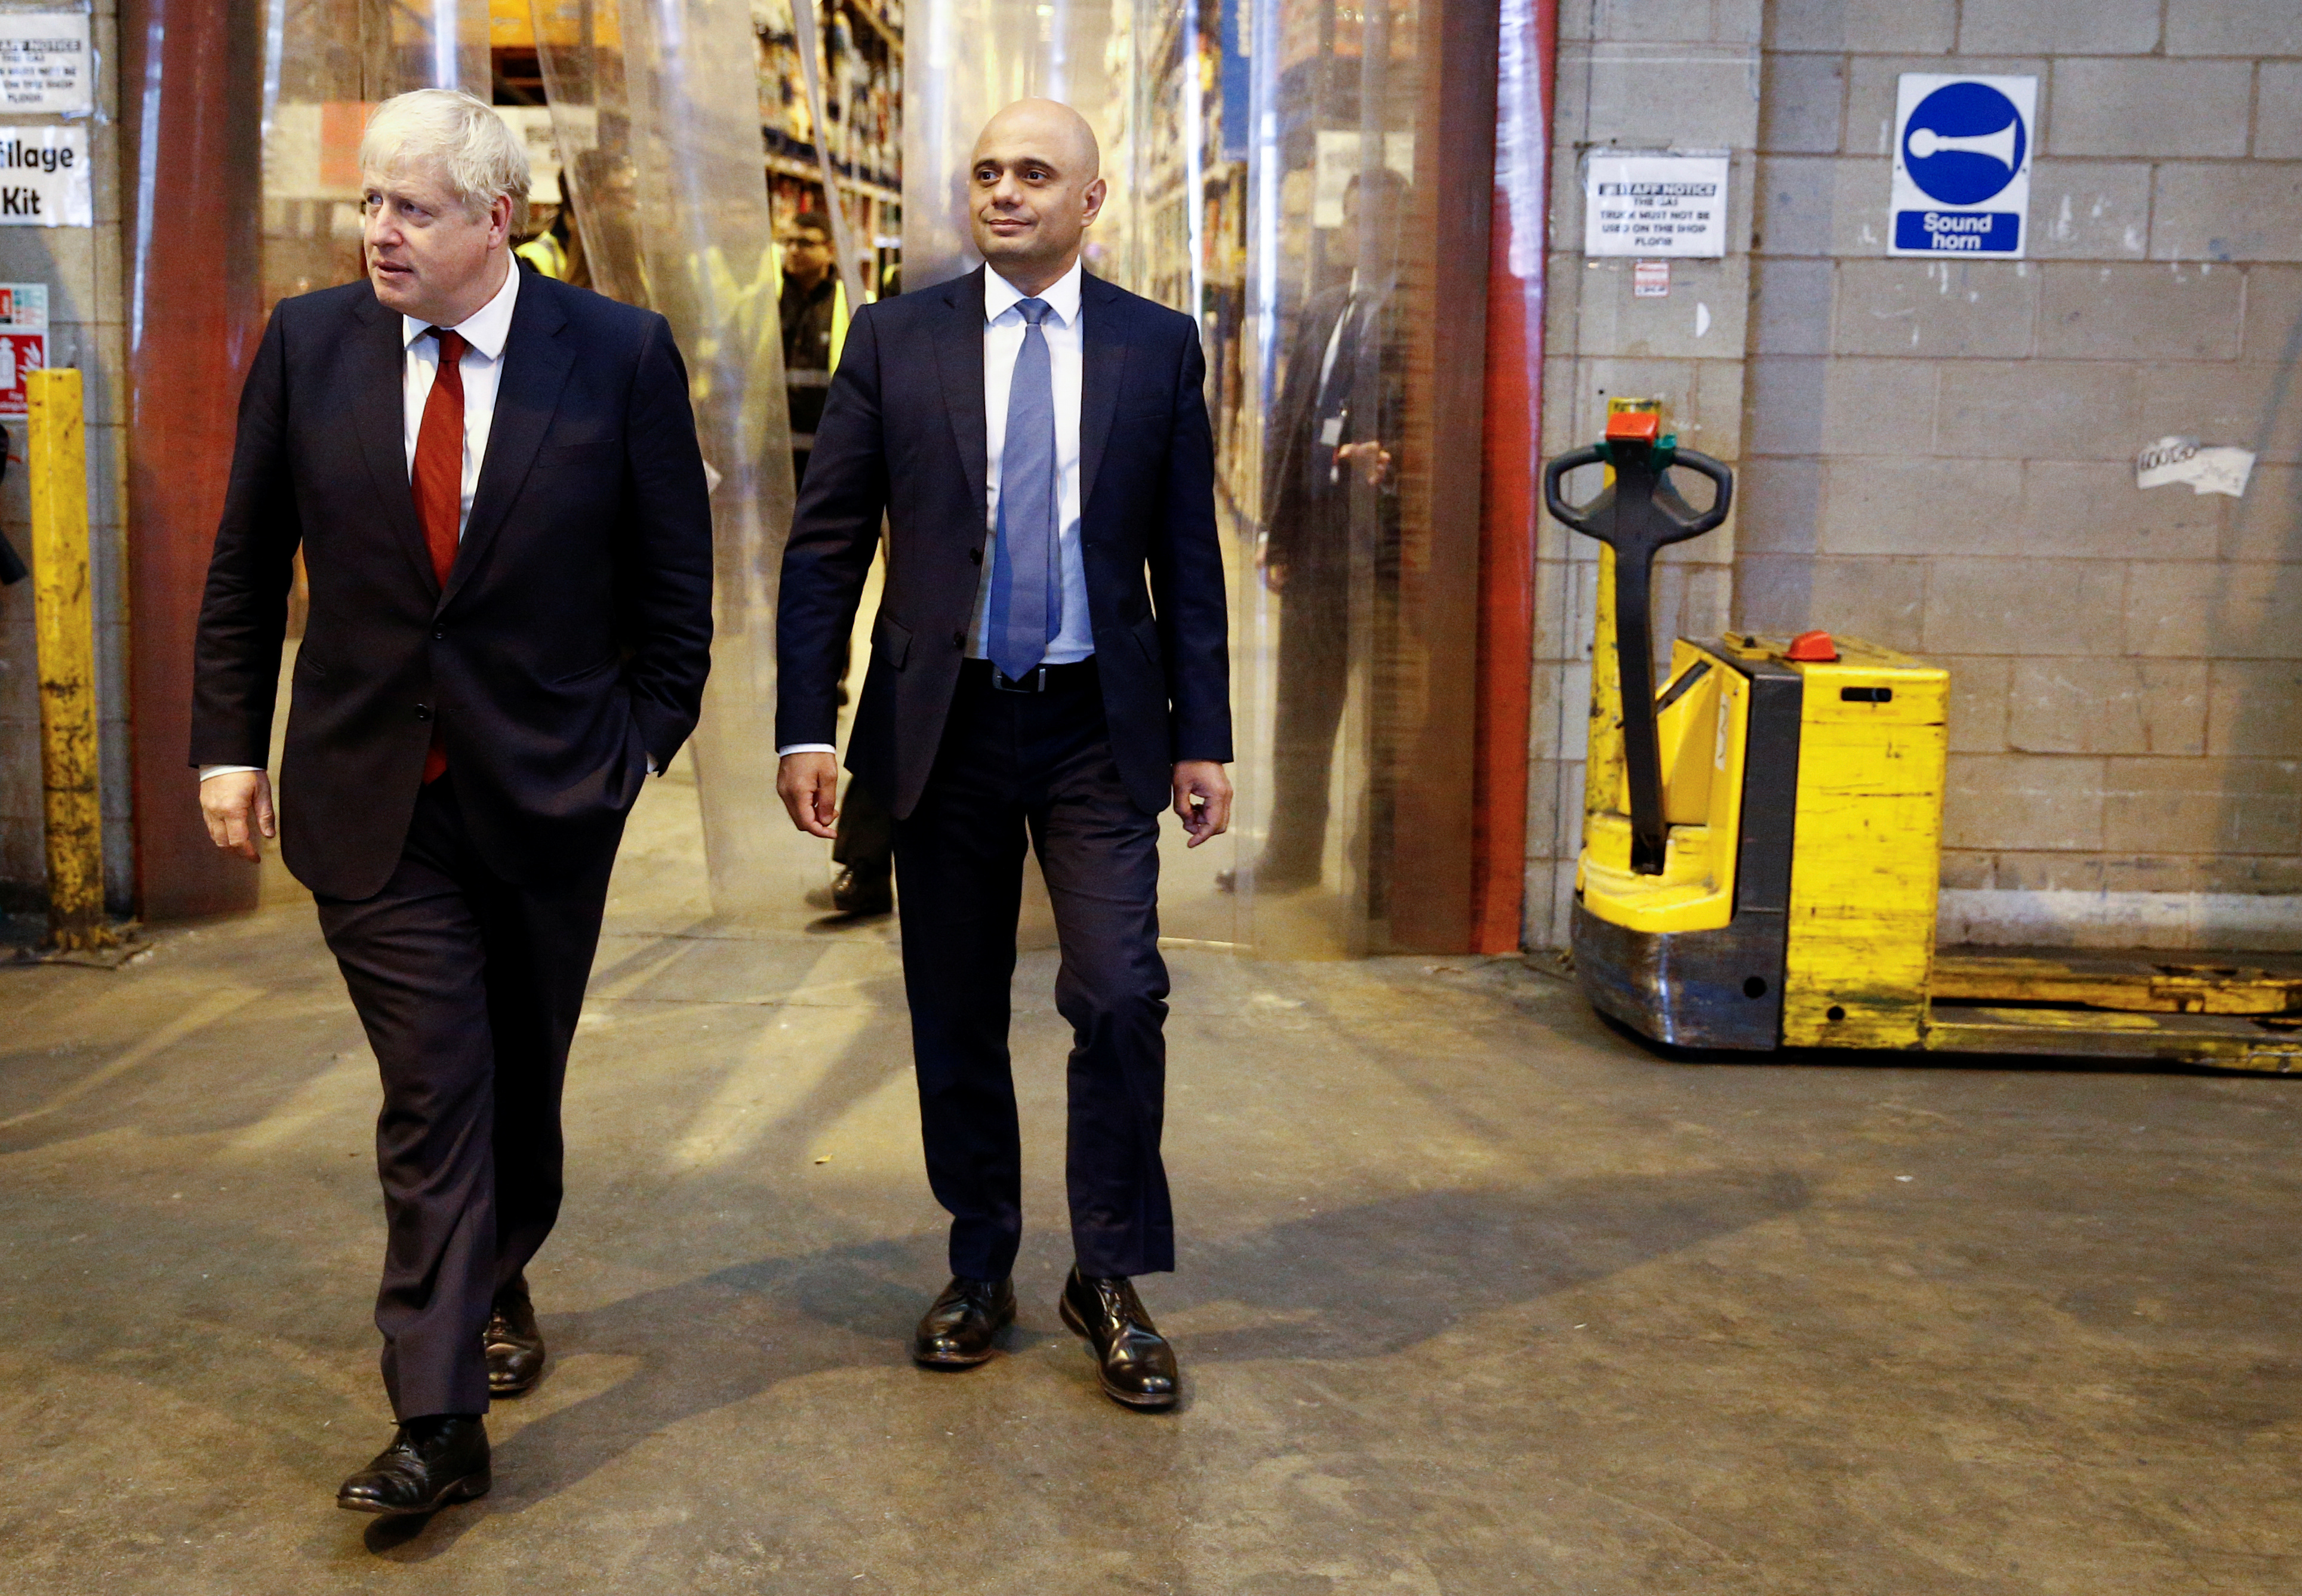 Prime Minister Boris Johnson (left) and the Chancellor of the Exchequer Sajid Javid during a visit to Bestway Wholesale in Manchester.